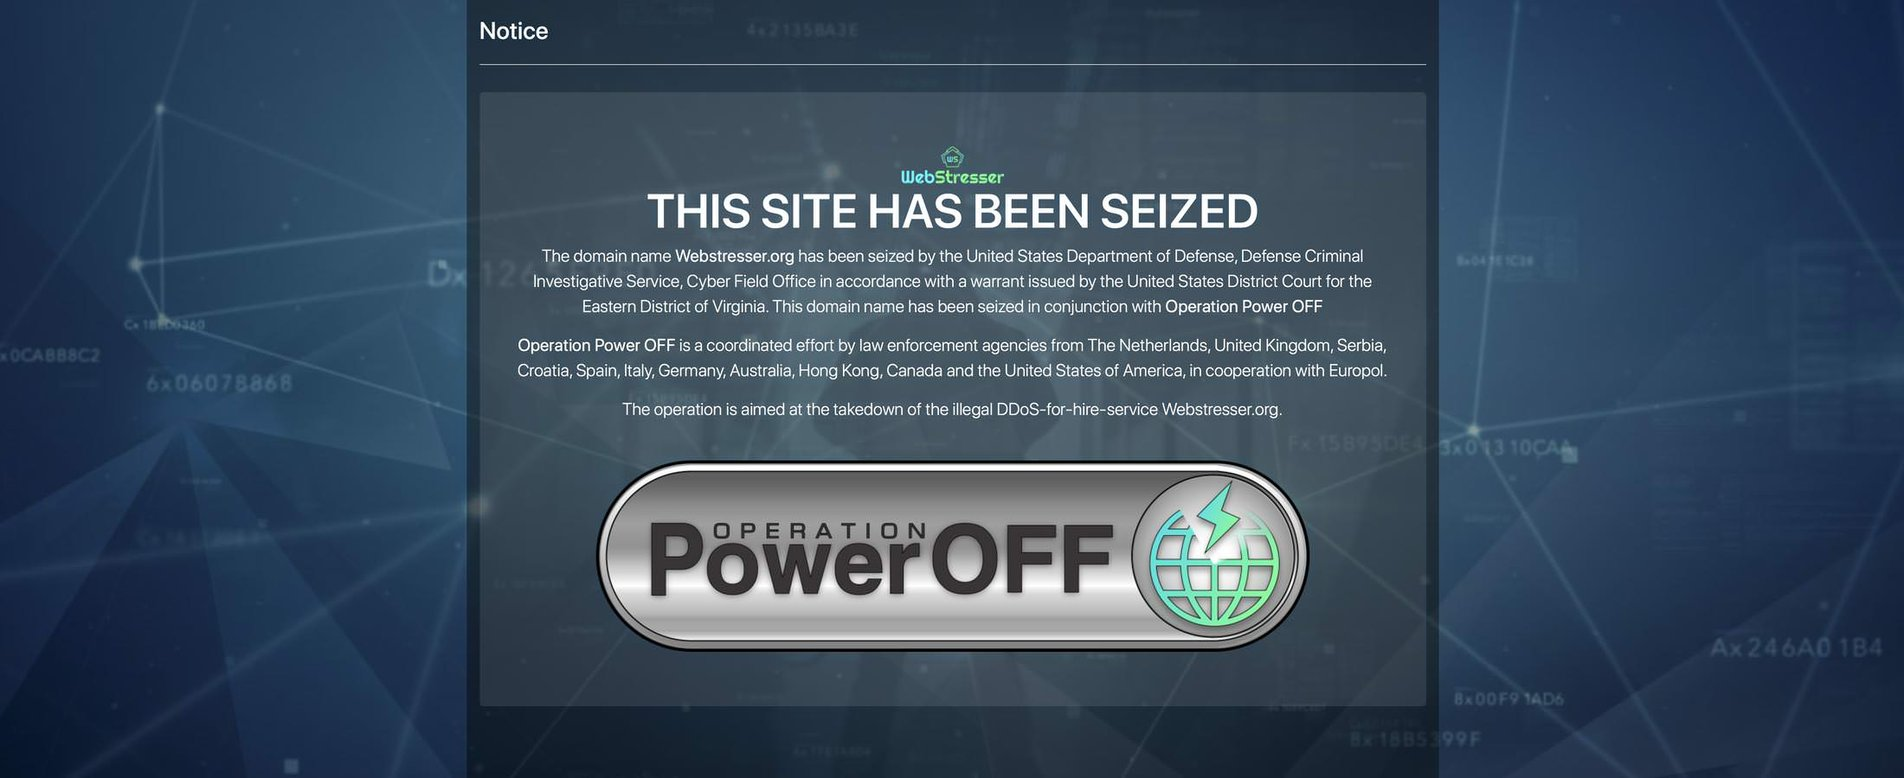 WebStresser.org seized by the United States Department of Defense.